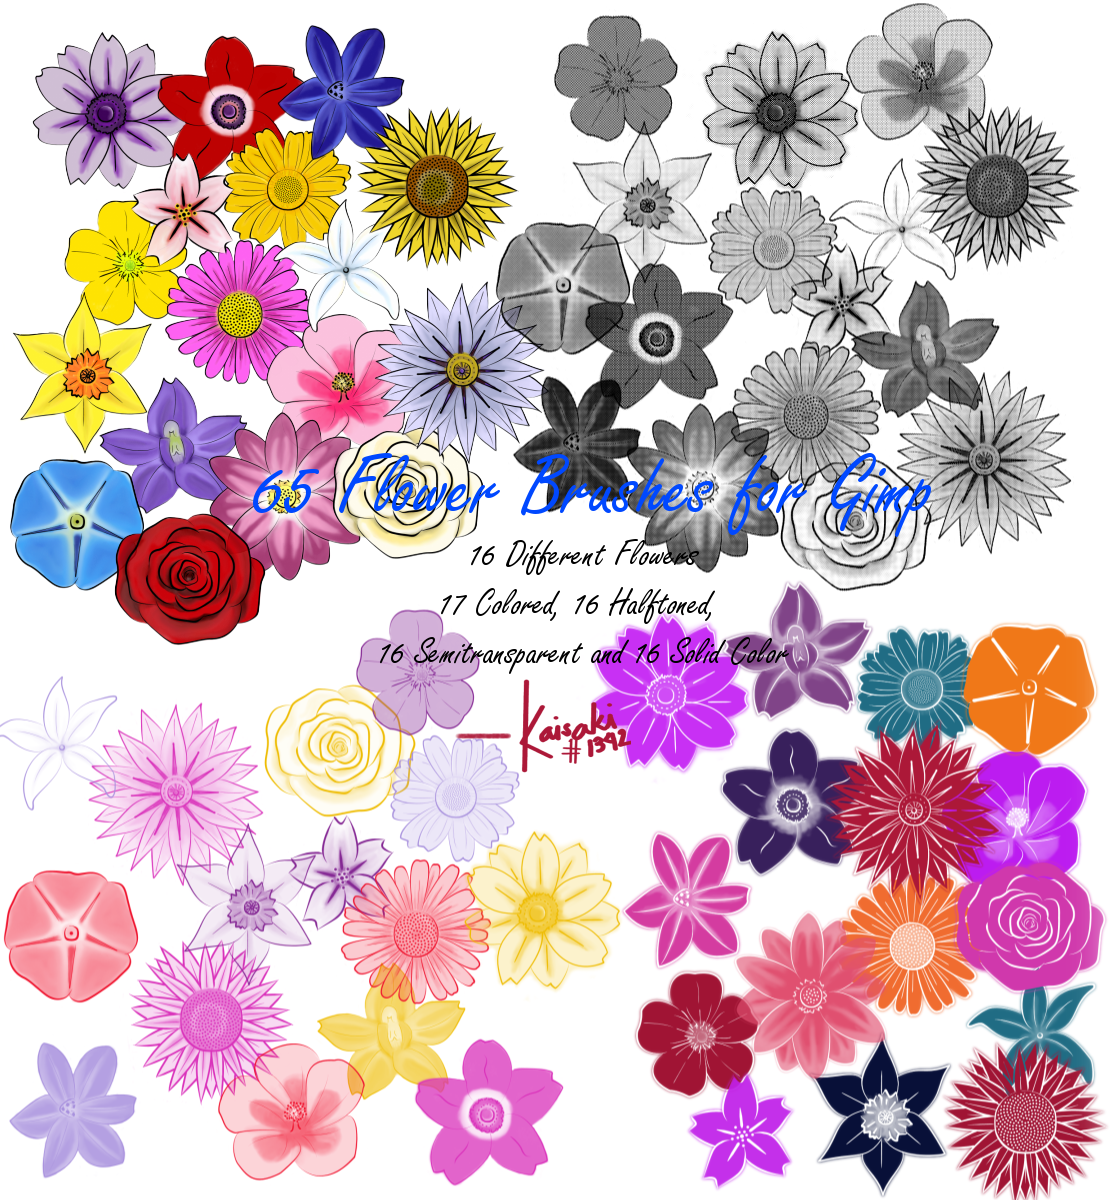 Flower Brushes for GIMP by kaichi1342